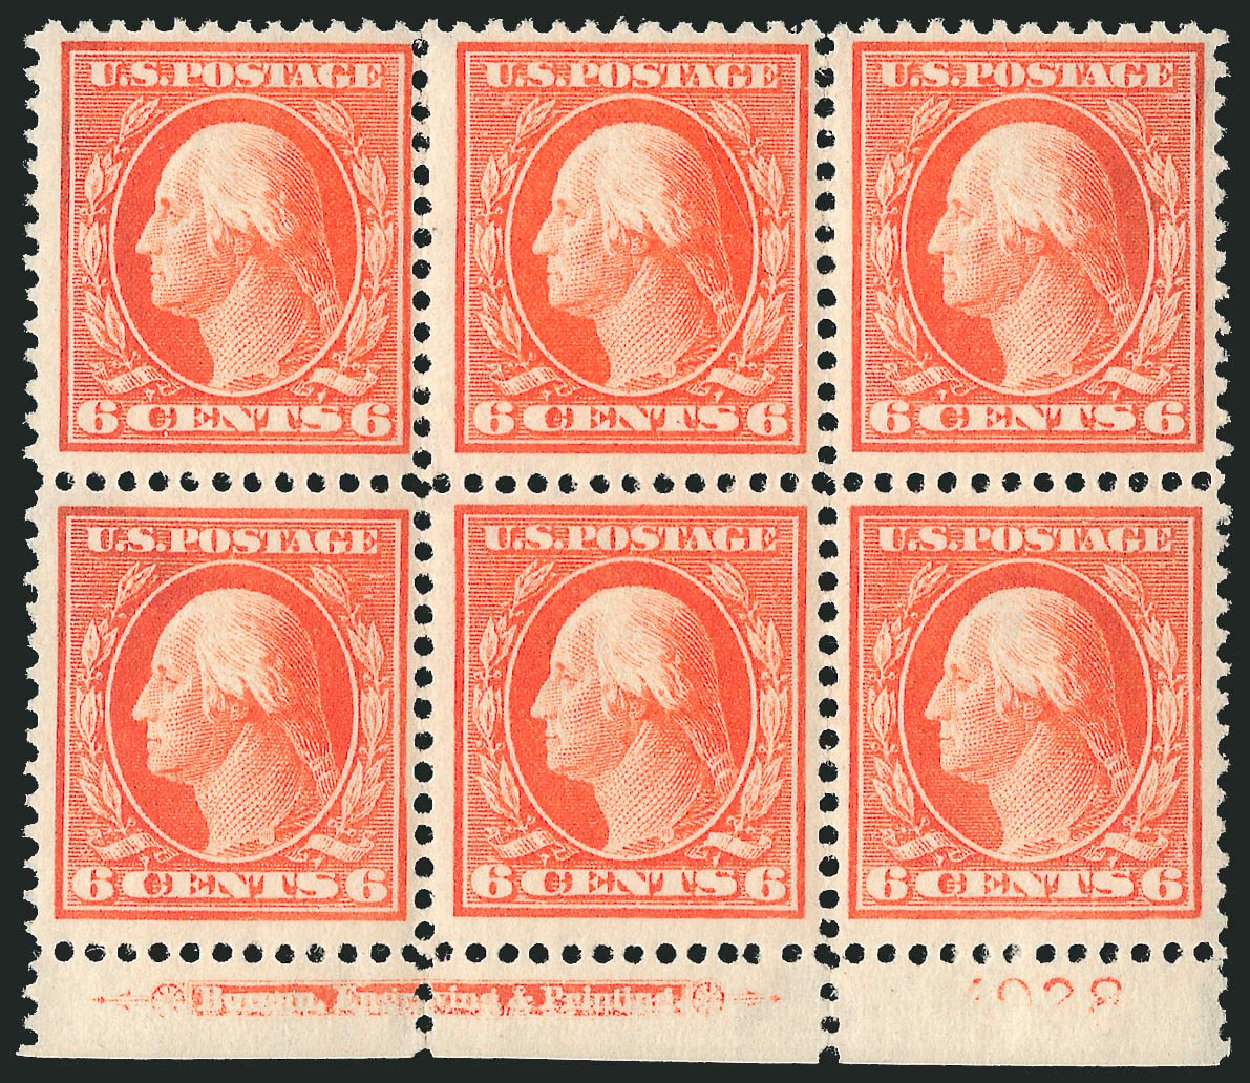 Prices of US Stamp Scott Catalogue #379 - 6c 1911 Washington Perf 12. Robert Siegel Auction Galleries, Feb 2015, Sale 1093, Lot 188